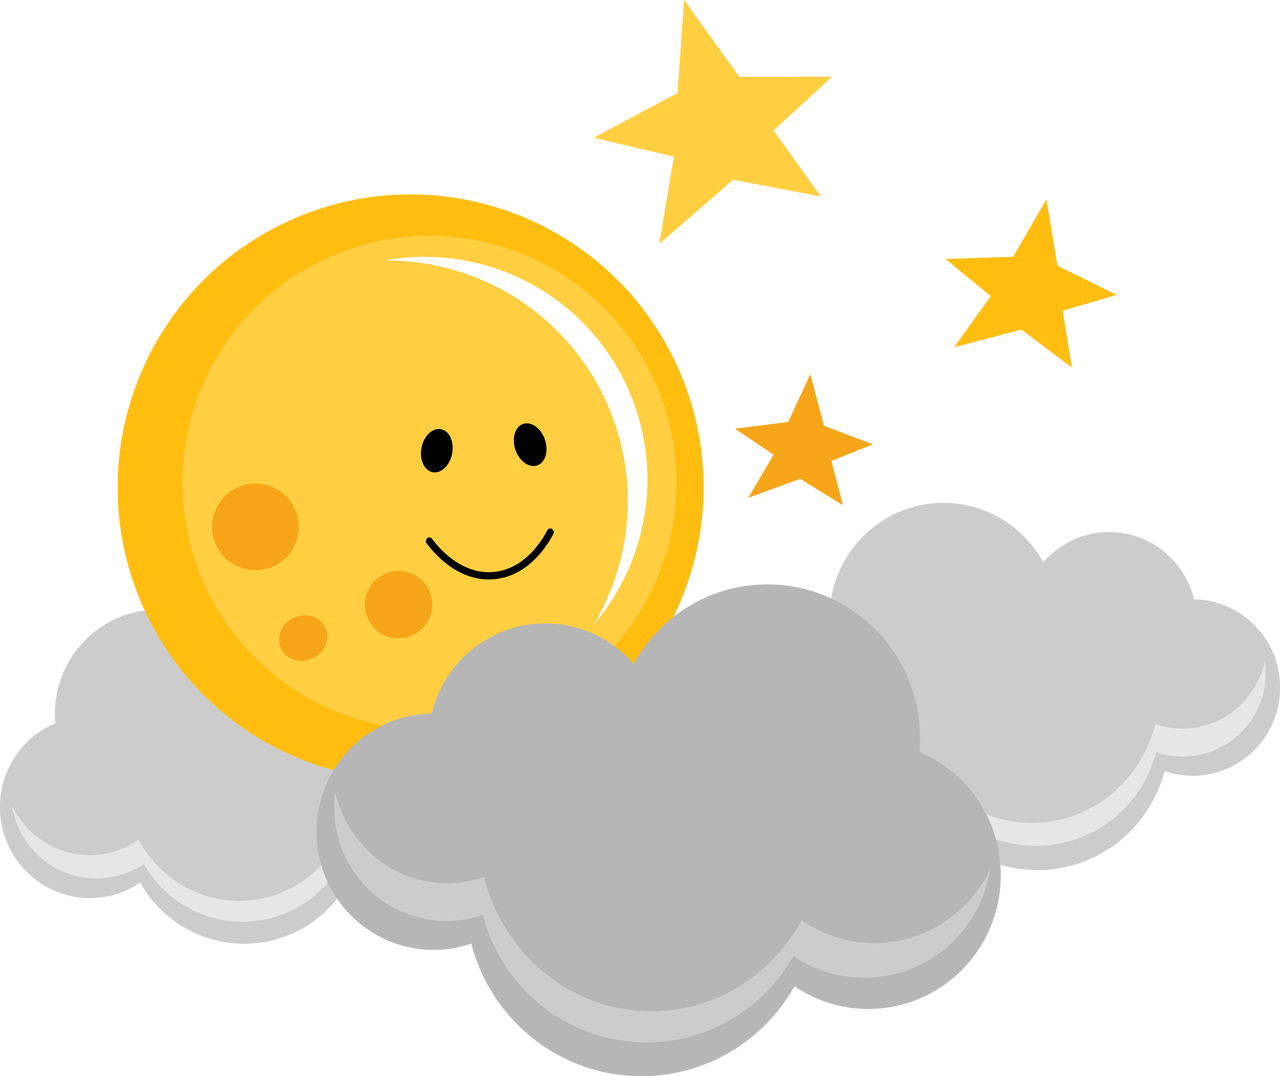 Sun peeking around clouds clipart